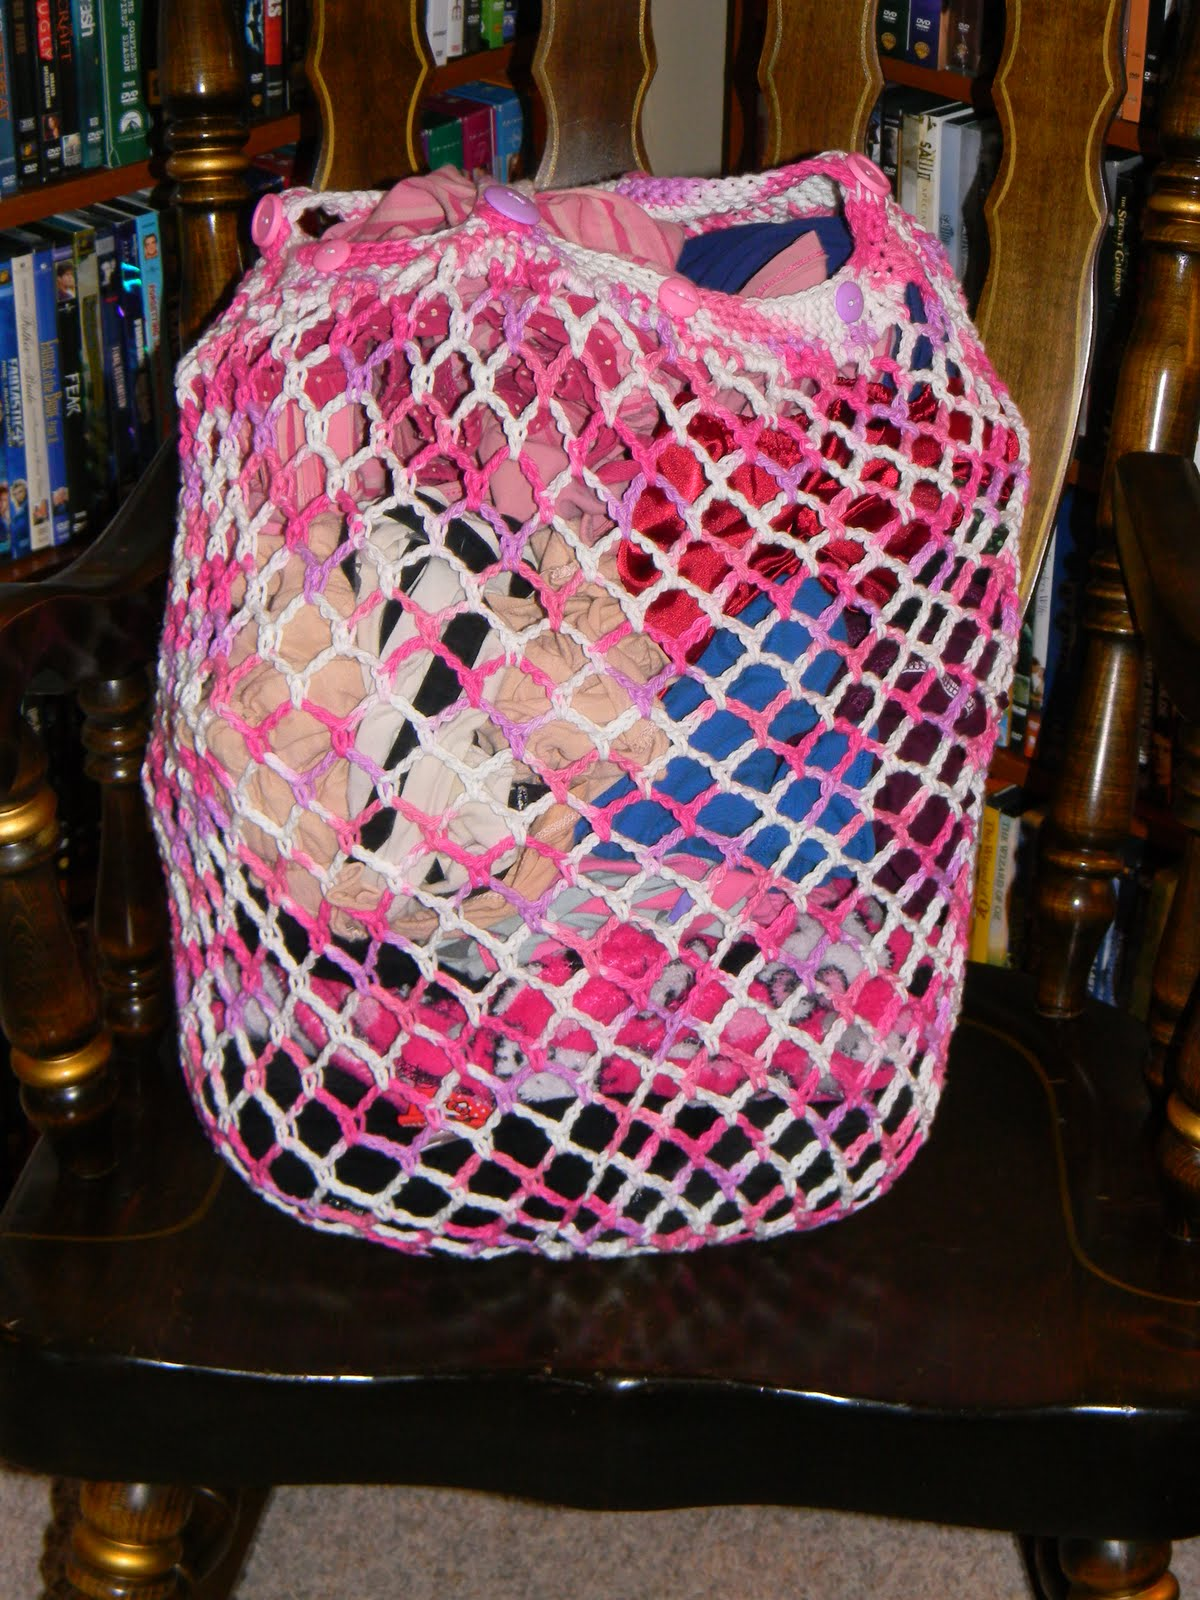 Sassys Crafty Creations: Crochet Laundry Bag